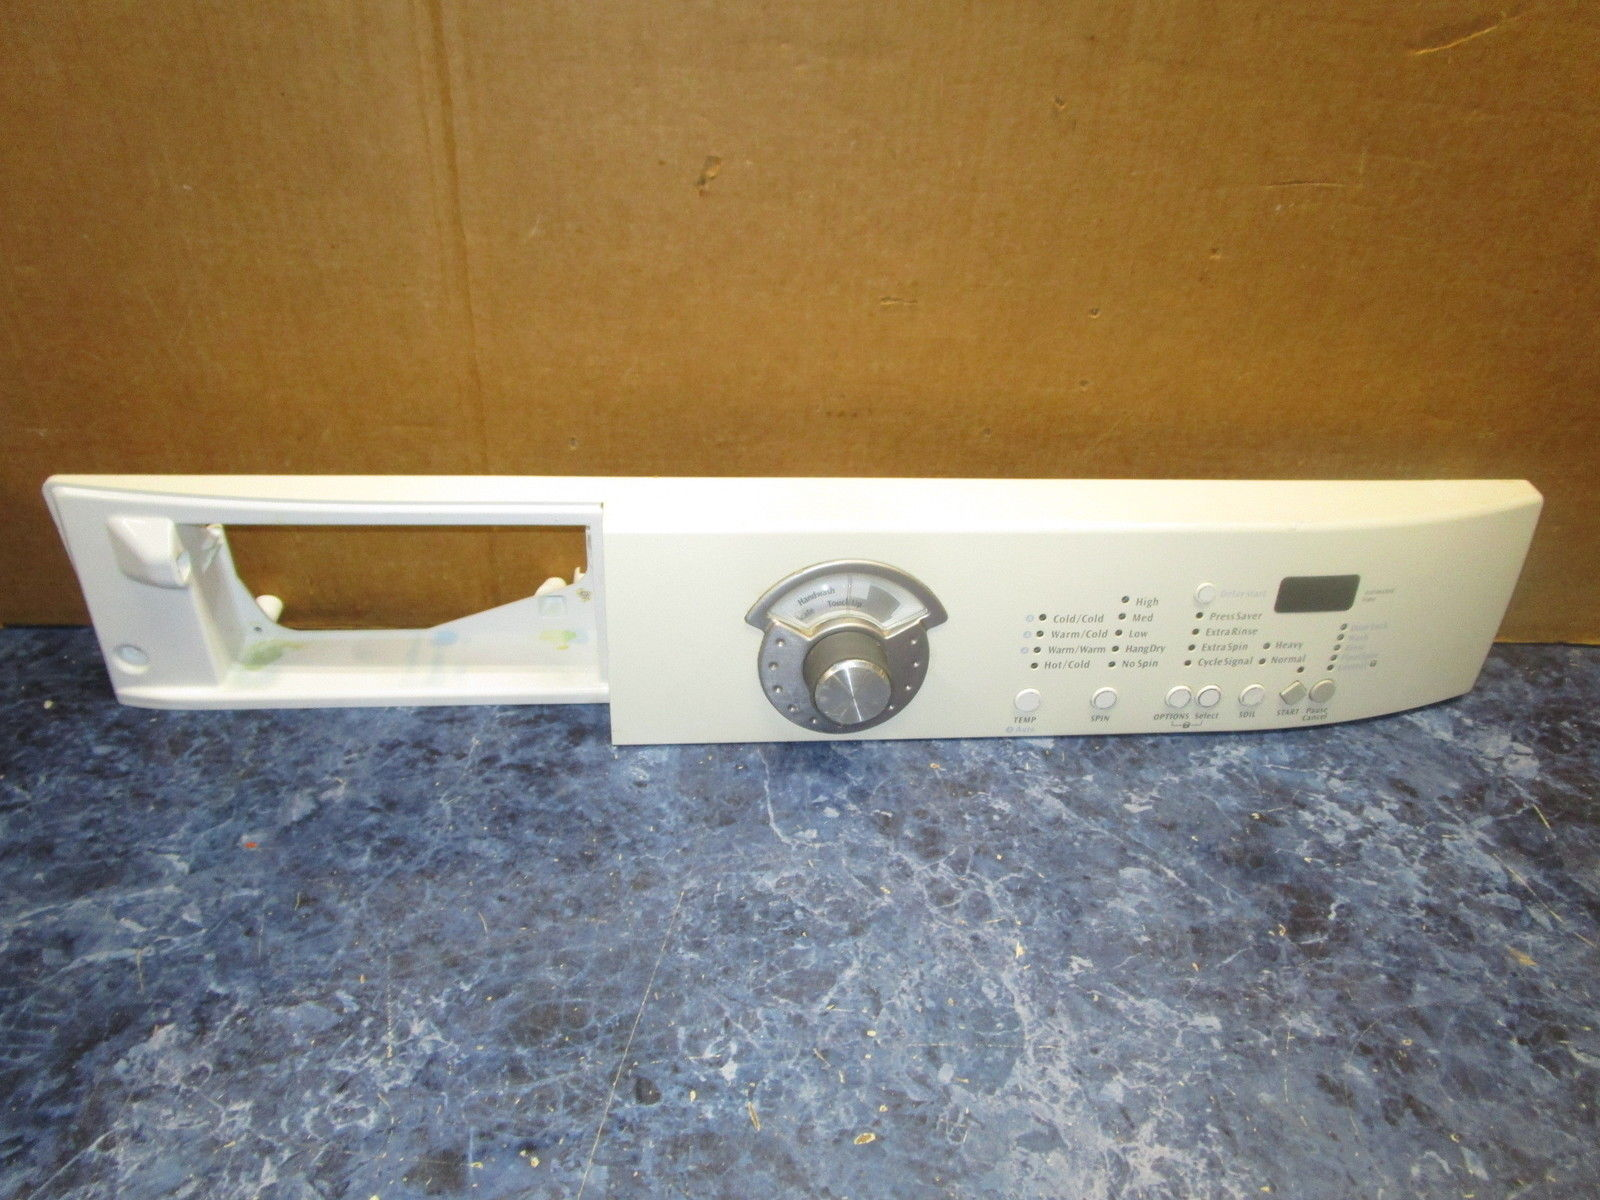 FRIGIDAIRE WASHER CONTROL PANEL PART# 134442700  137006000